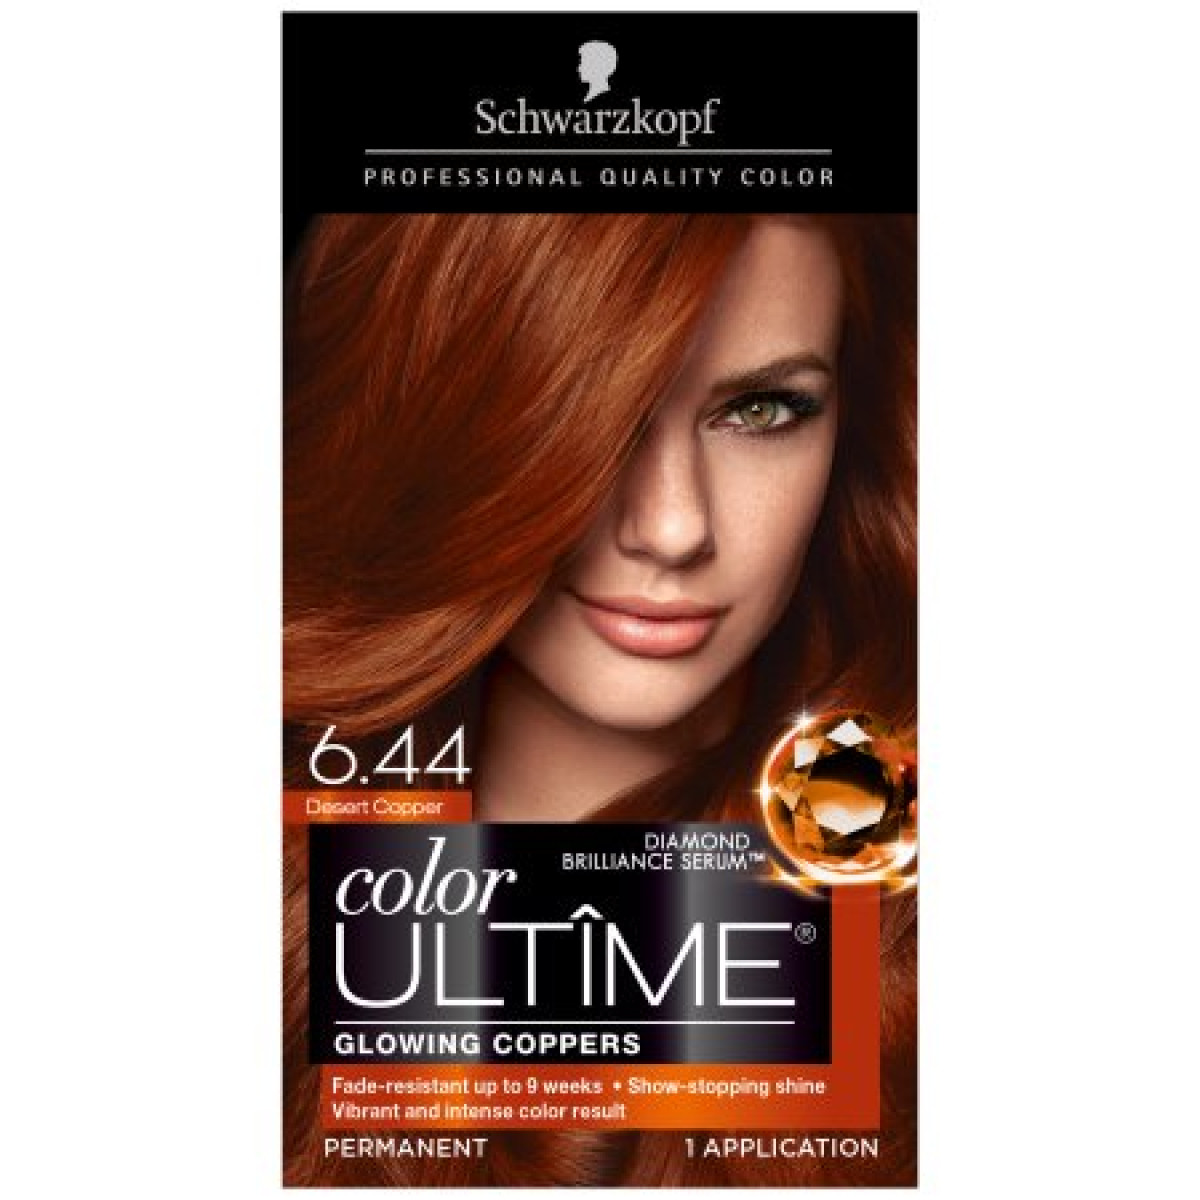 Schwarzkopf Color Ultime Permanent Hair Color Cream 31 Espresso Black